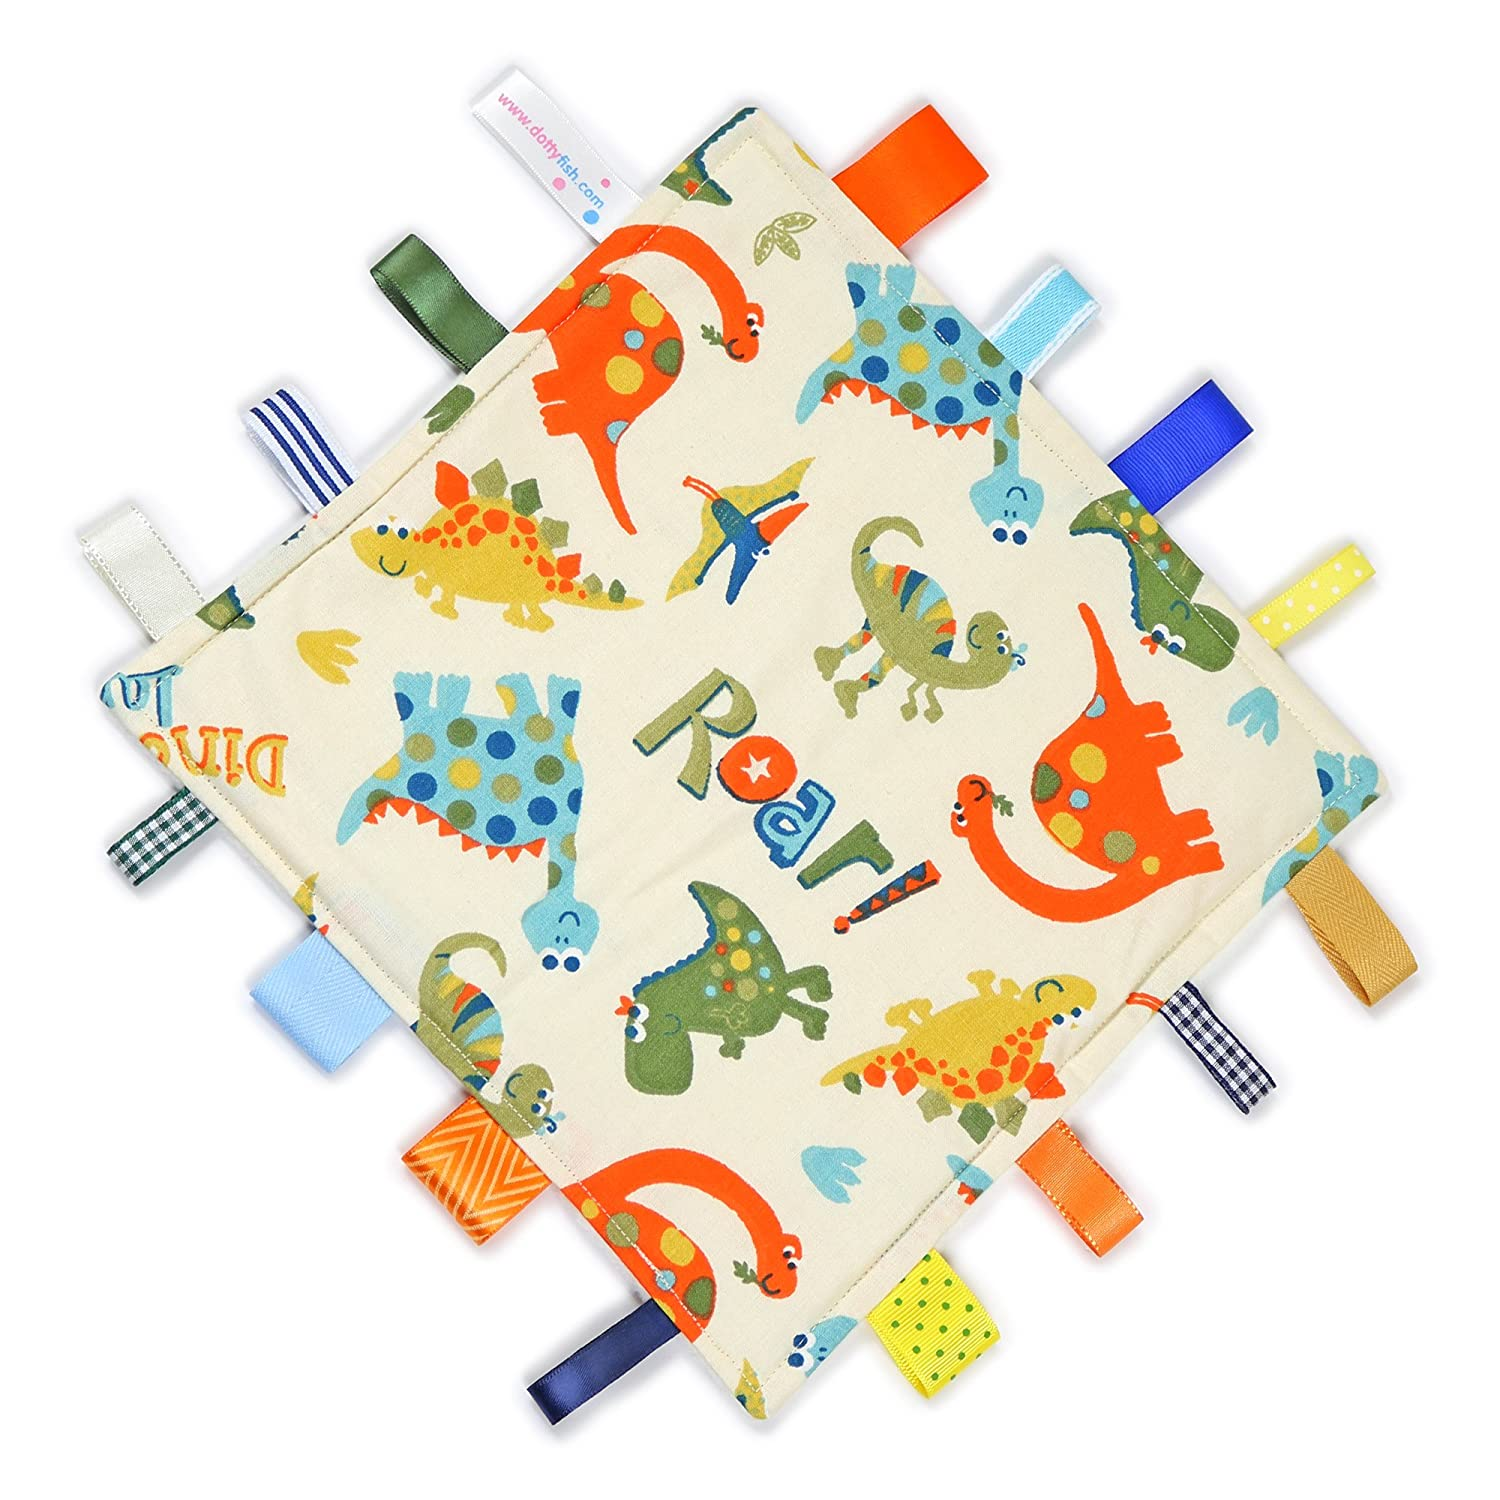 Dotty Fish Baby Tag Blanket with Cuddle Soft Backing. Handmade Baby Taggie Blanket. Sensory Blanket for Baby Boys and Girls. Cream with Multicoloured Owls and Minky fleece backing.